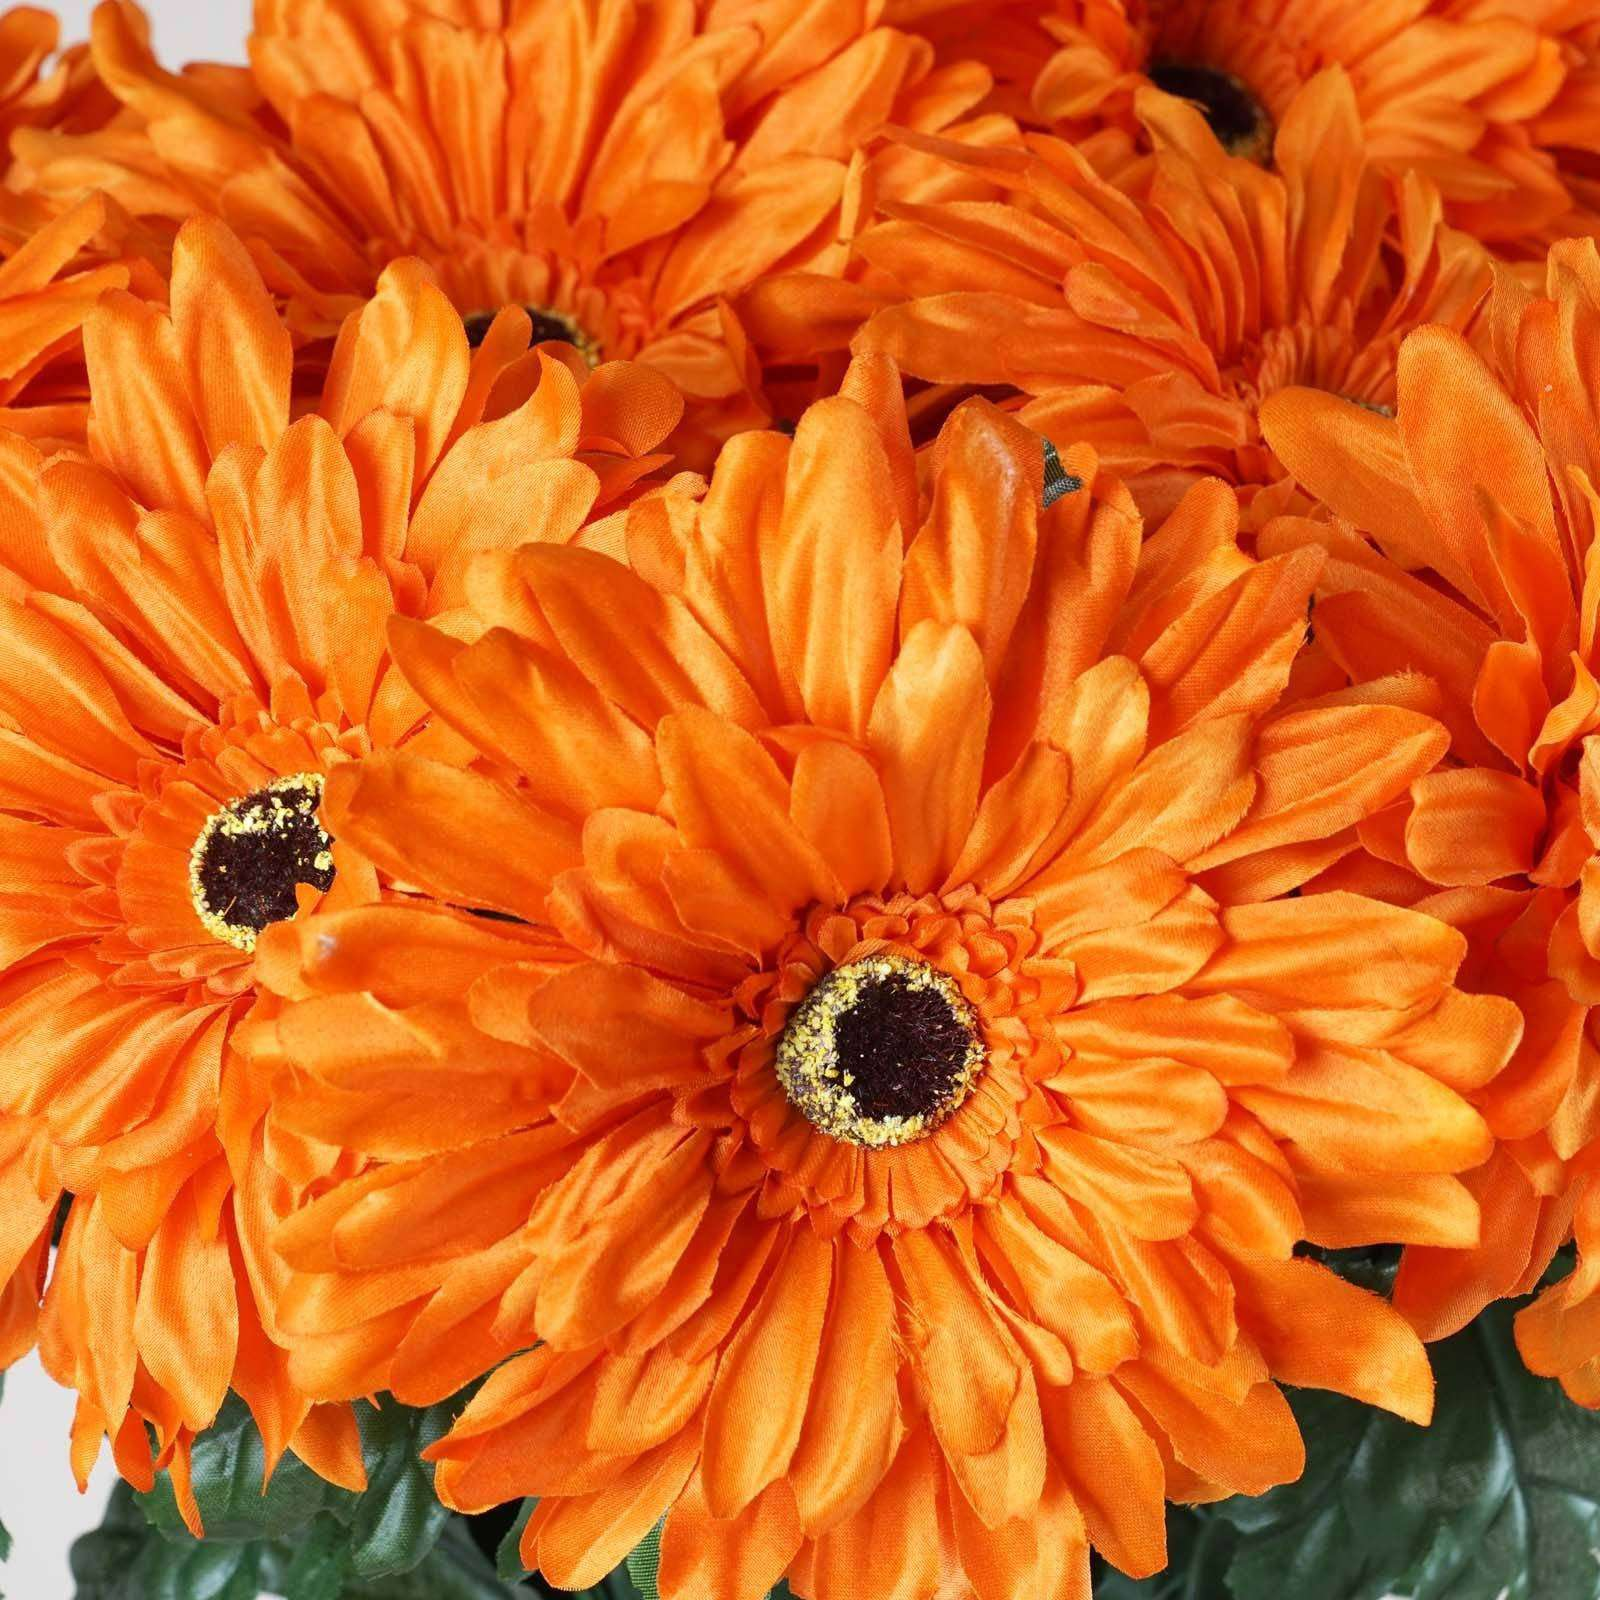 4 Bush 28 Pcs Orange Gerbera Daisy Artificial Flowers Wedding Vase